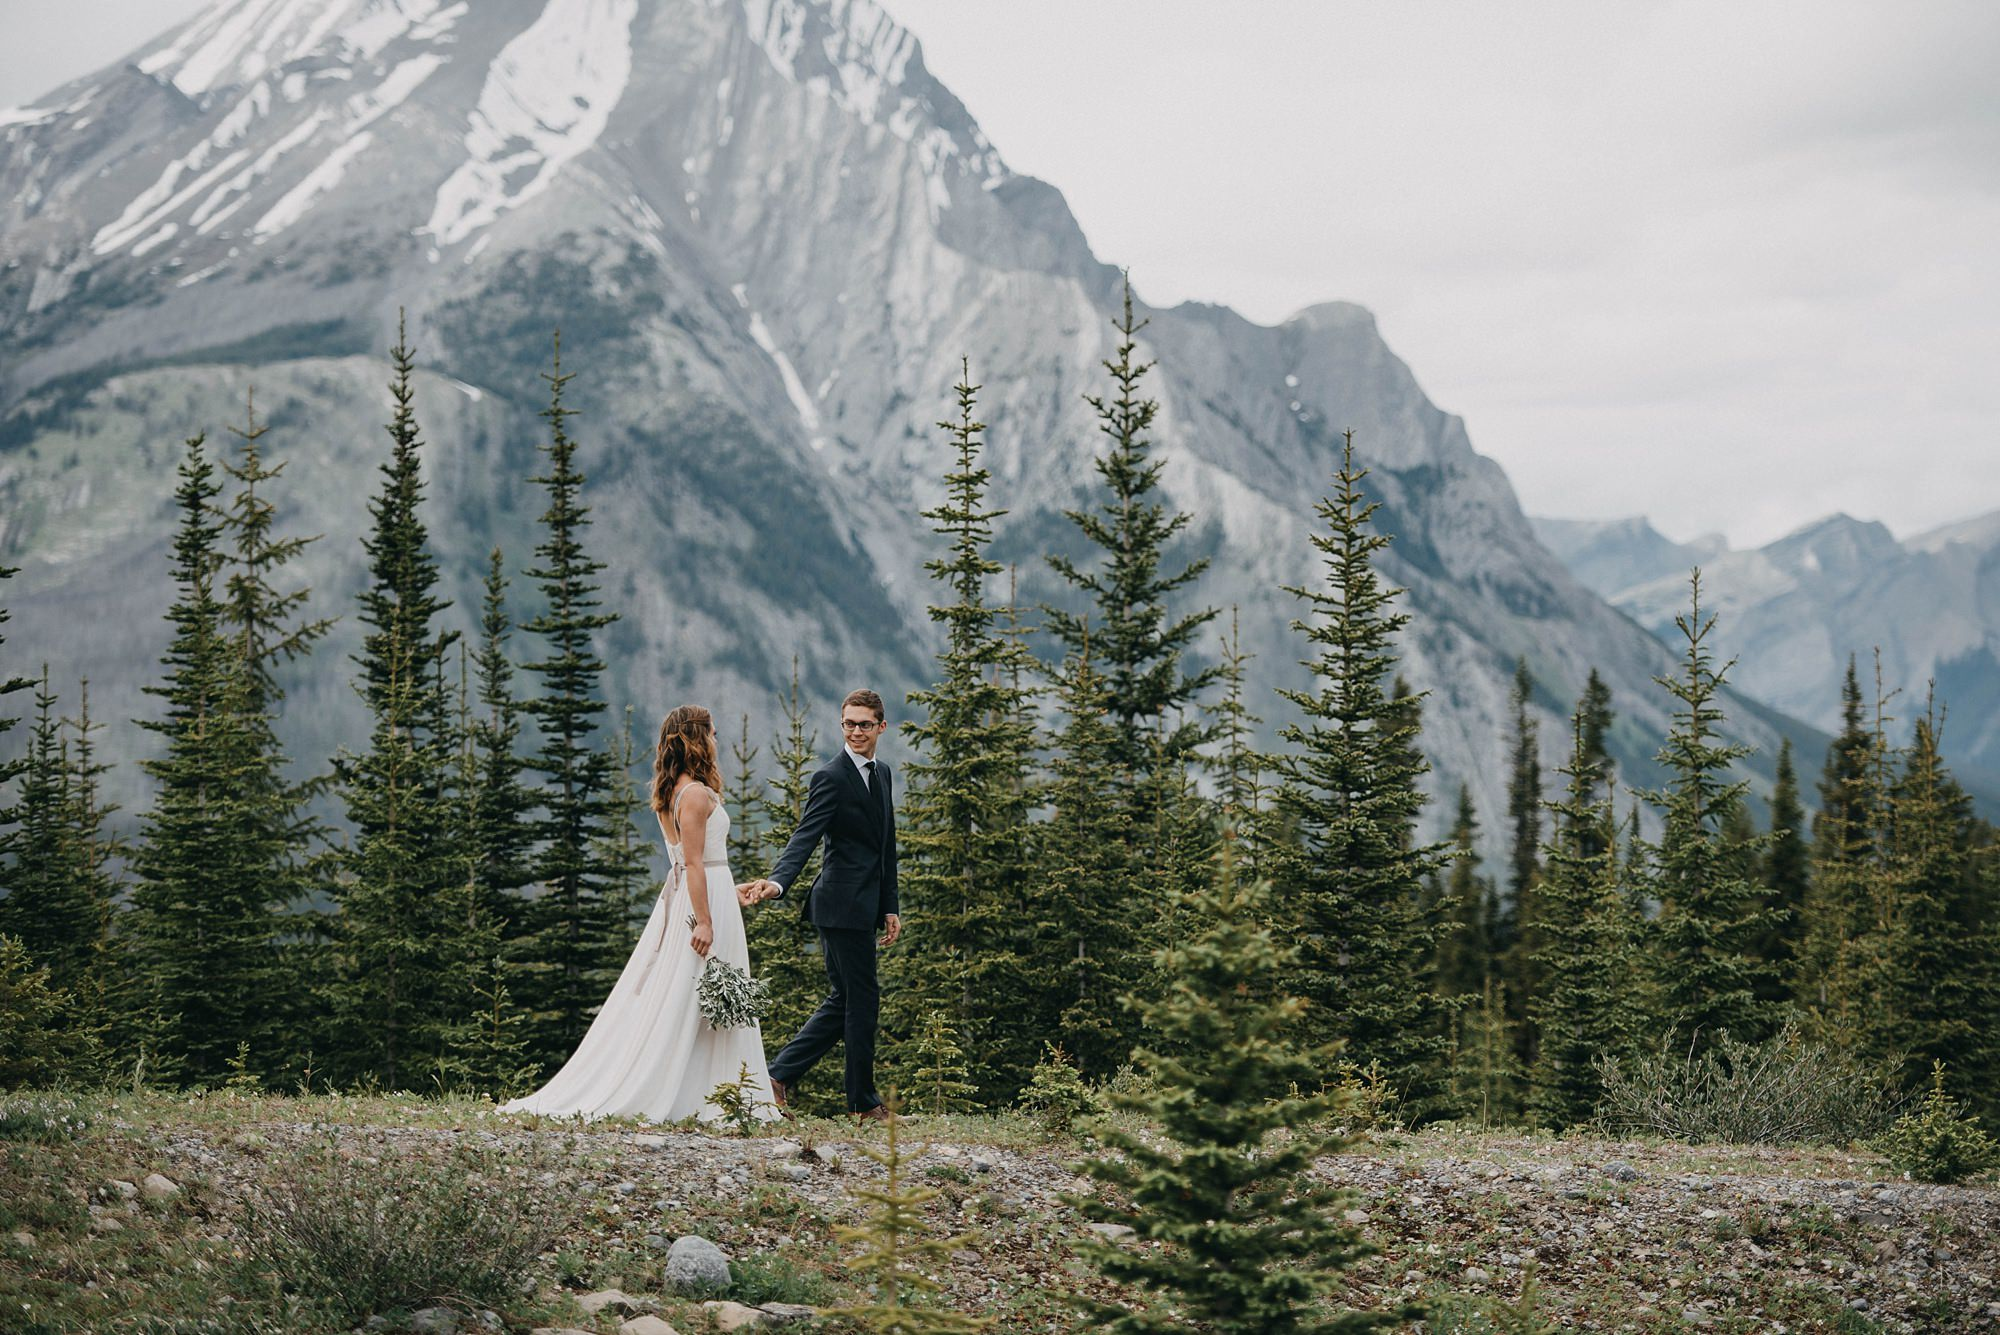 bride and groom standing together in field on deck with Kananaskis mountains behind them during Kananaskis wedding